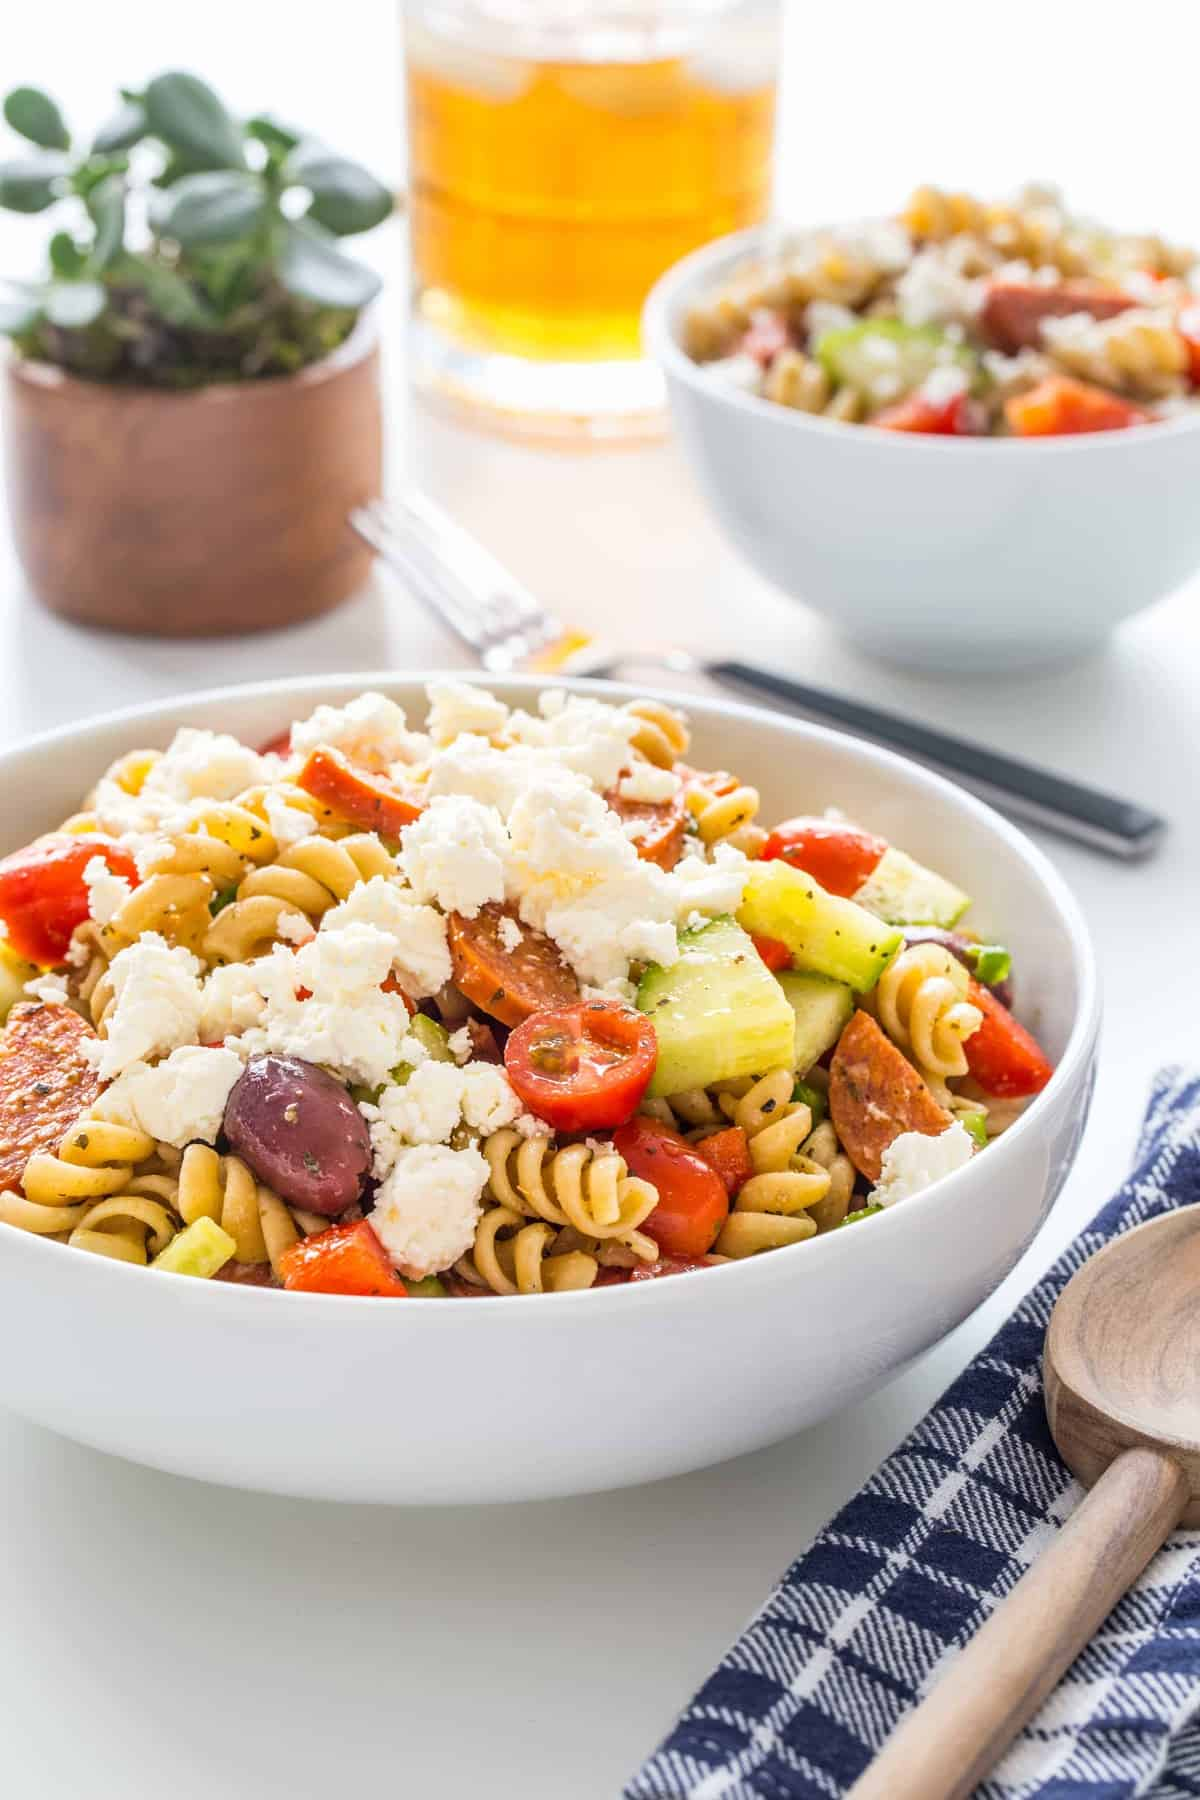 Greek pasta salad topped with feta cheese in a bowl next to a plaid napkin with a wooden spoon